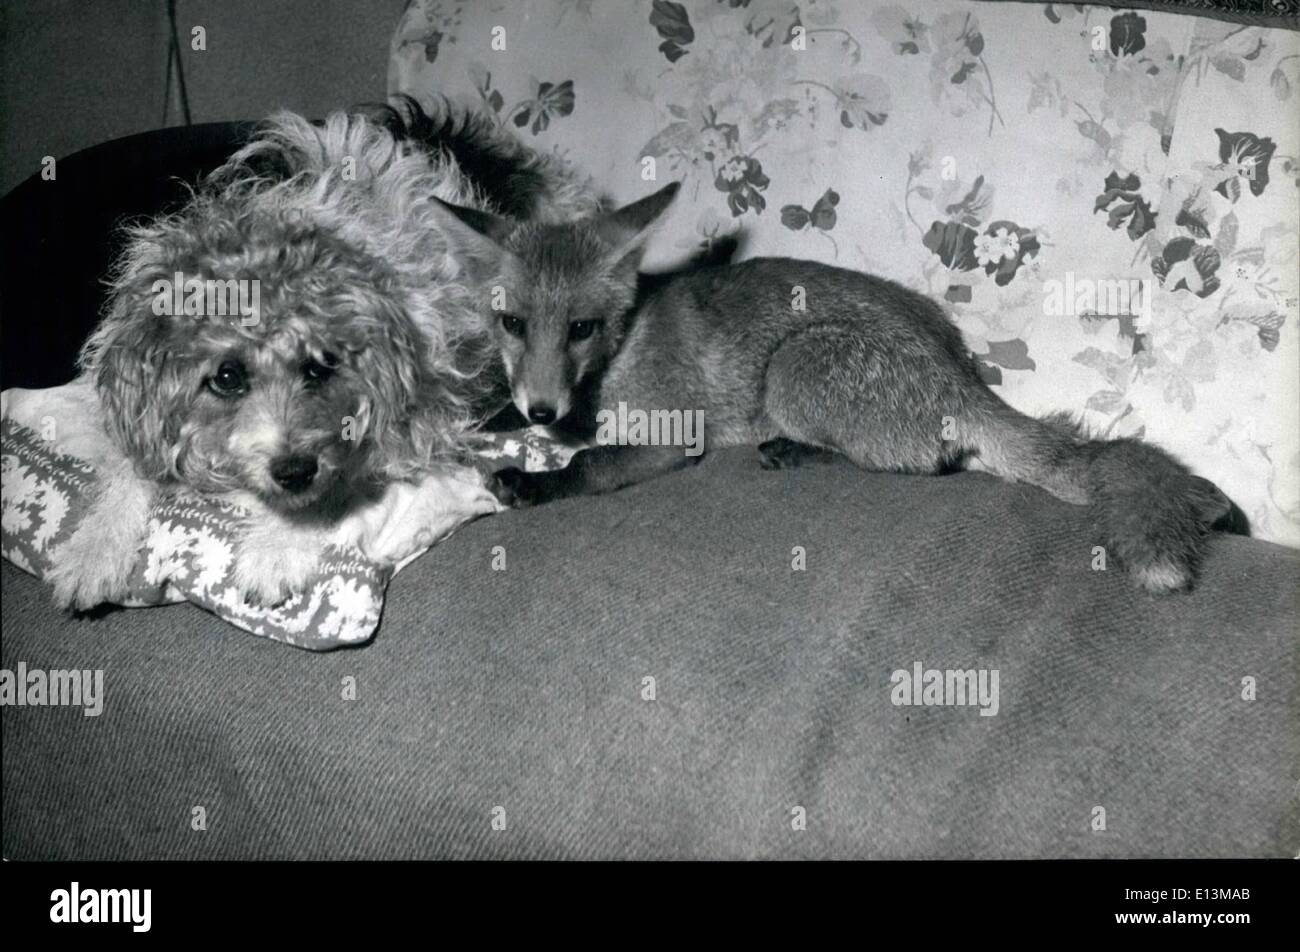 Mar. 02, 2012 - The domesticated fox; They're jolly good pals, even if they don't look so well-disposed - Stock Image